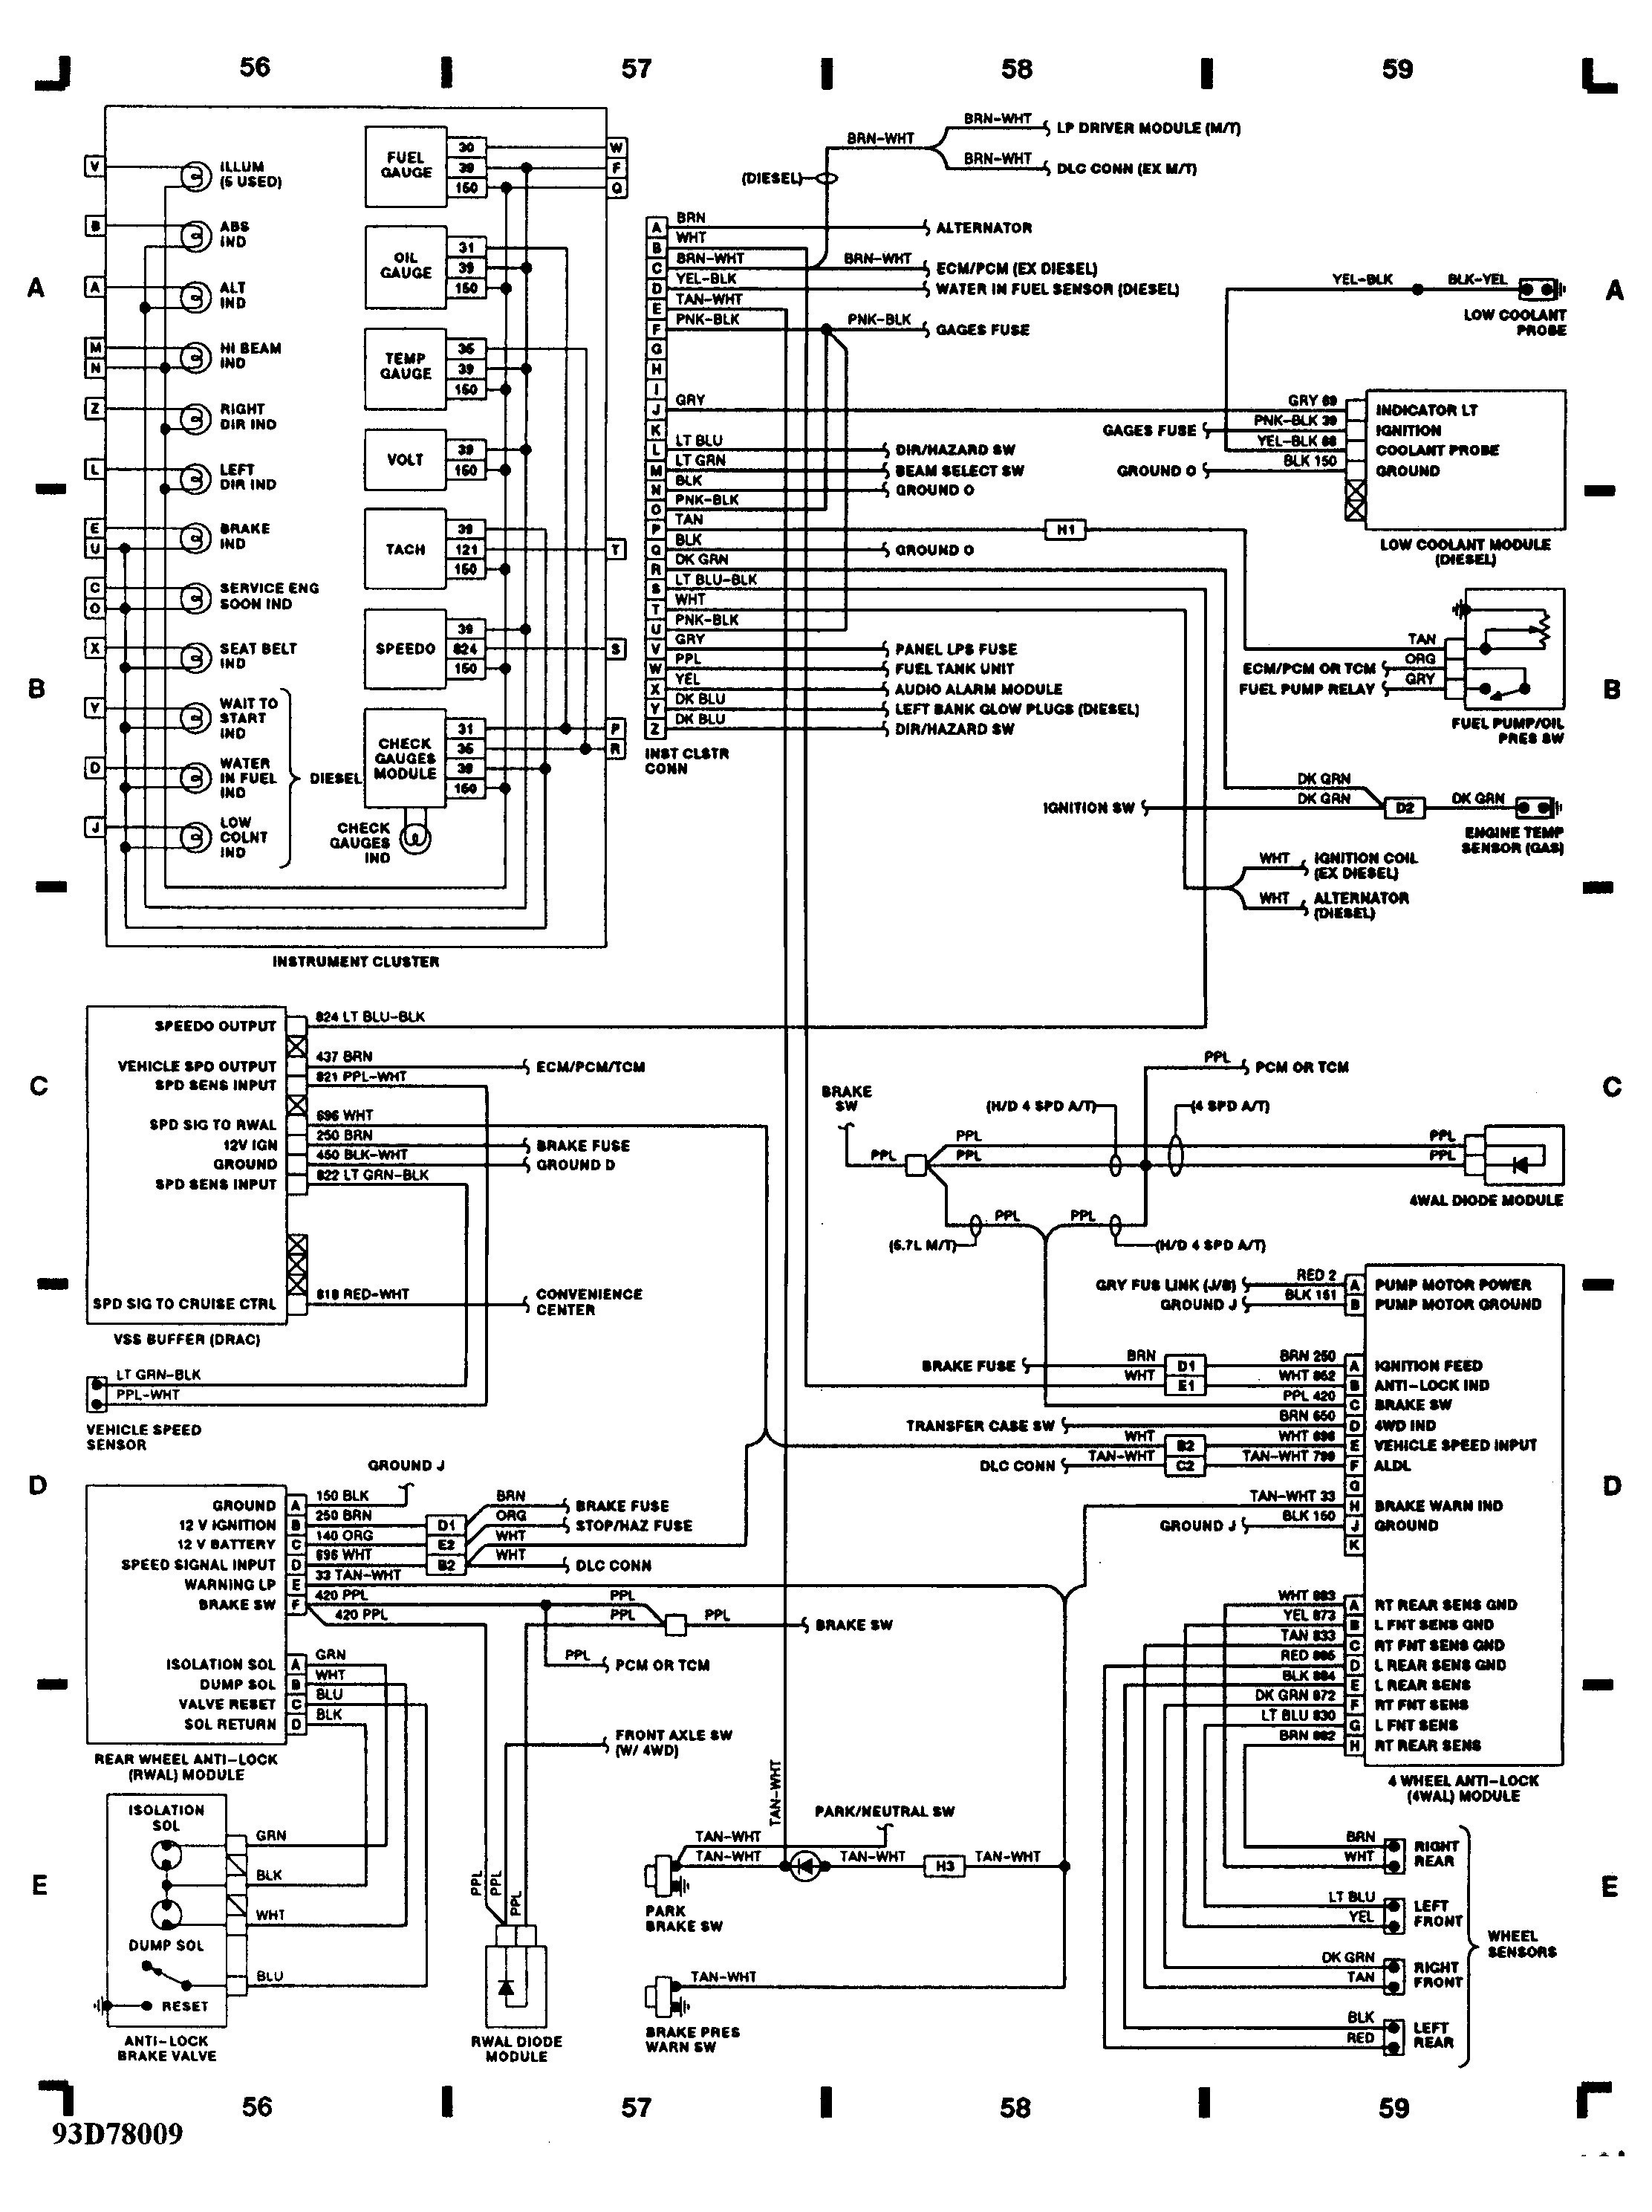 Generator Wiring Diagram Likewise 1954 Chevy Bel Air Wiring Diagram